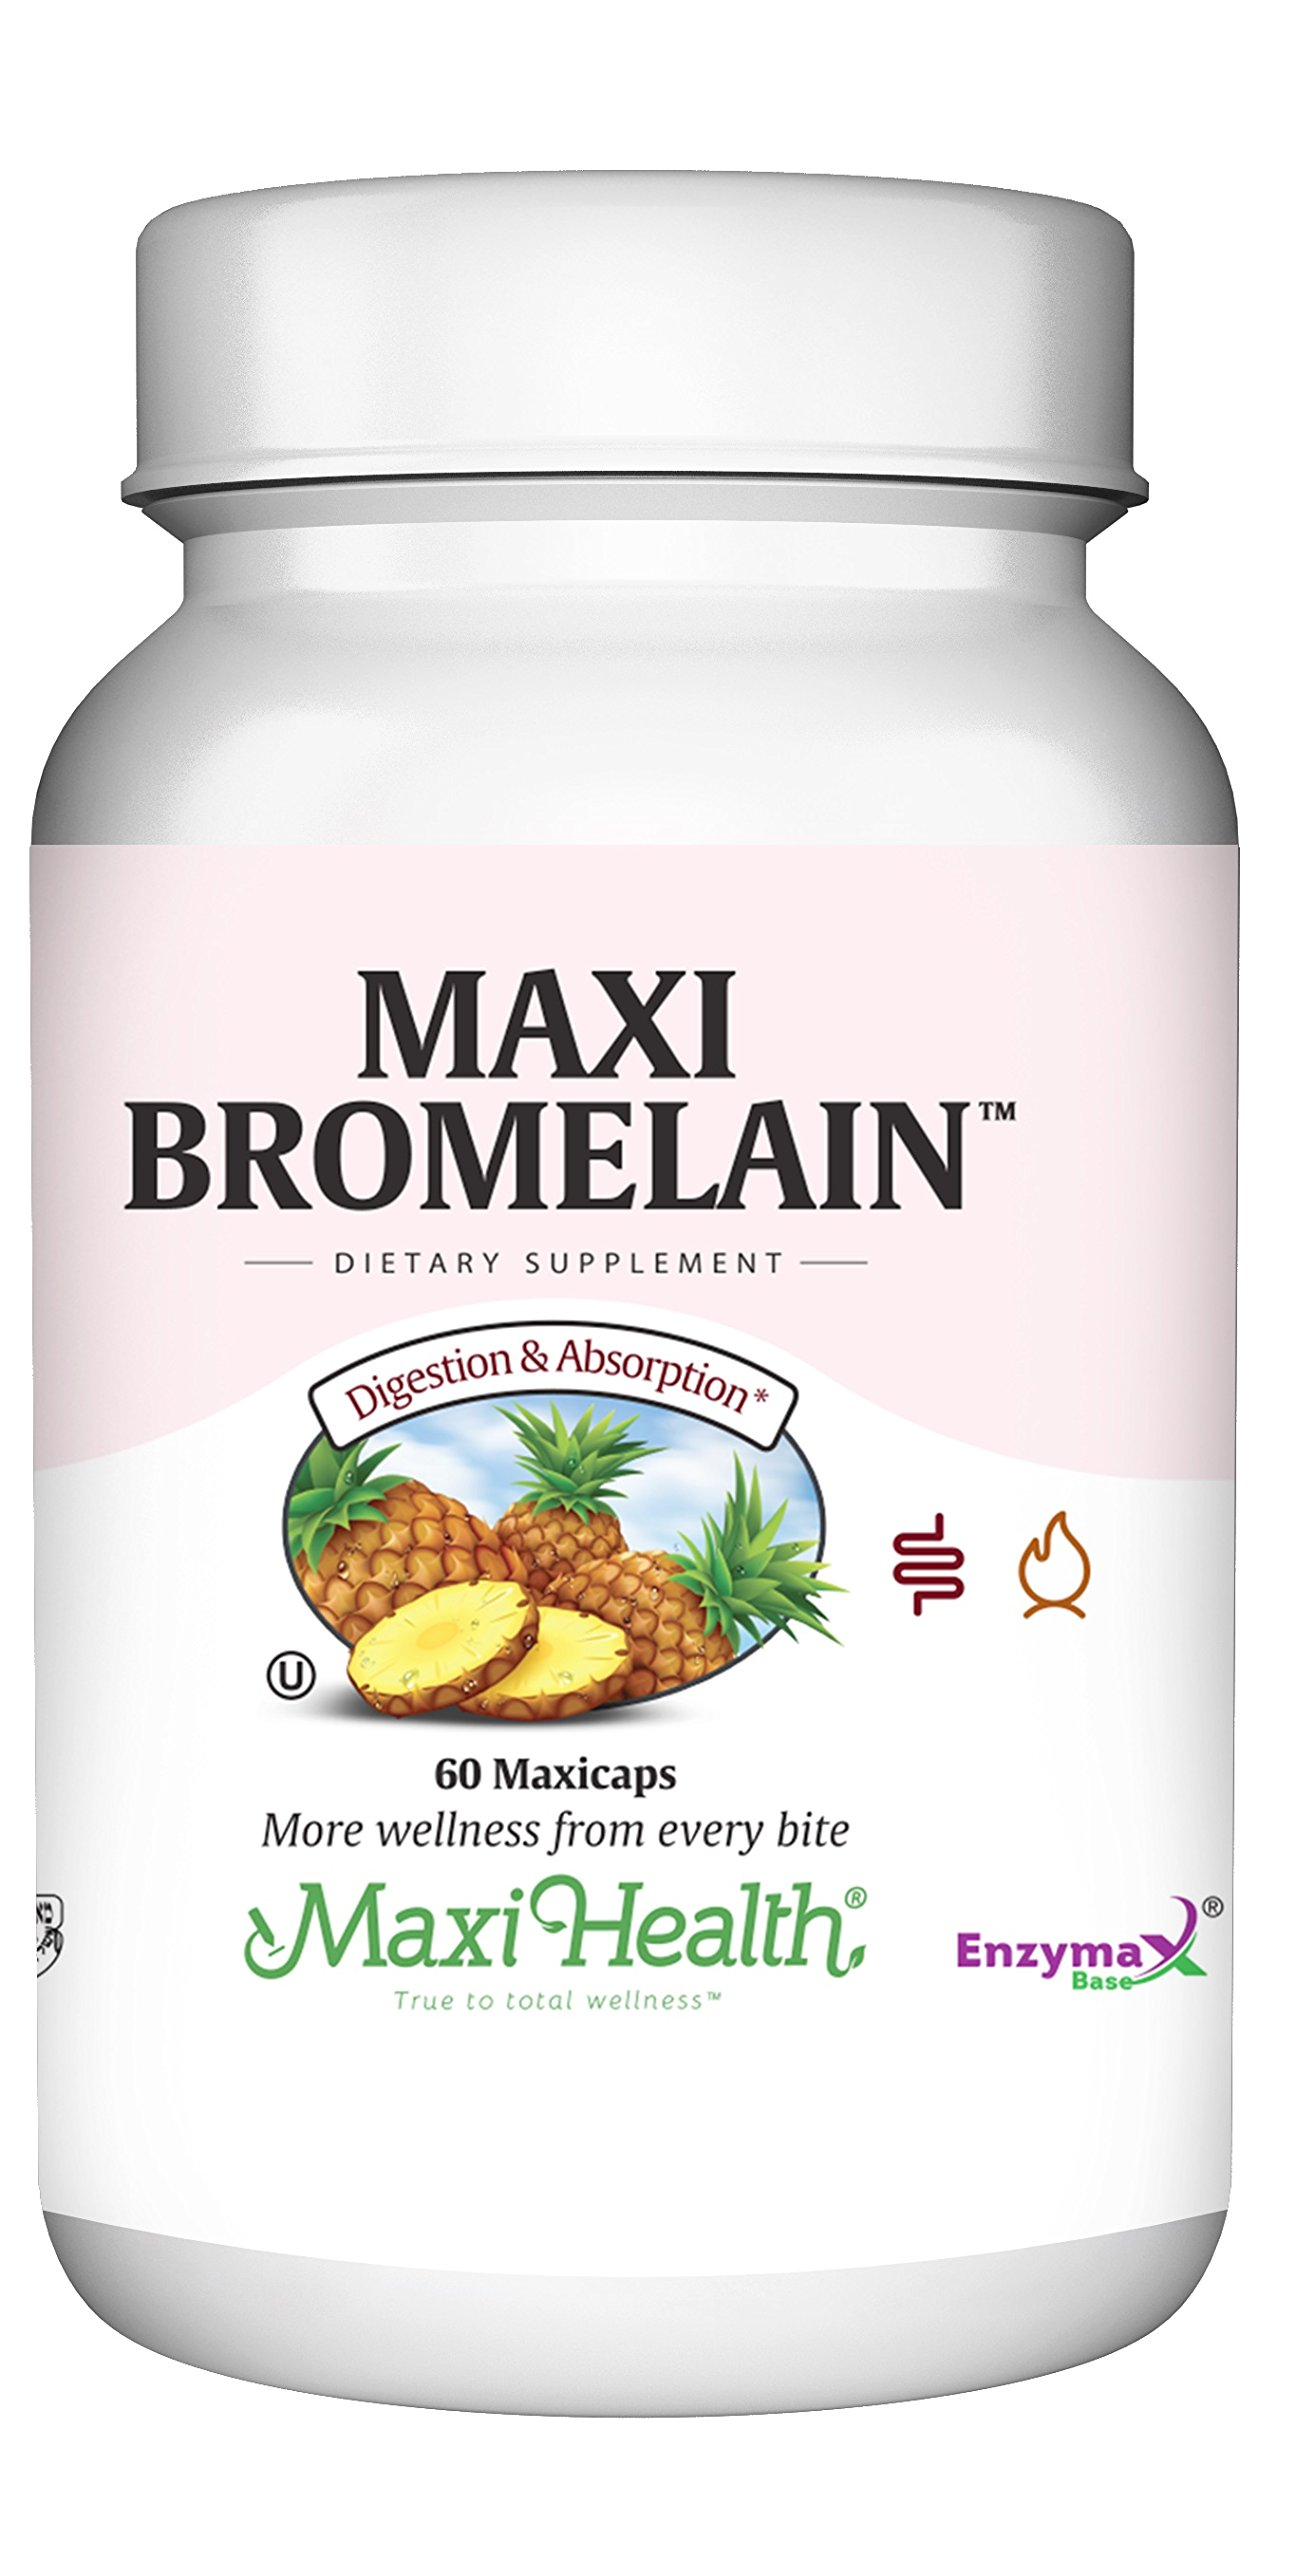 Maxi Bromelain Digestive Support Capsules, Kosher, 60 Count